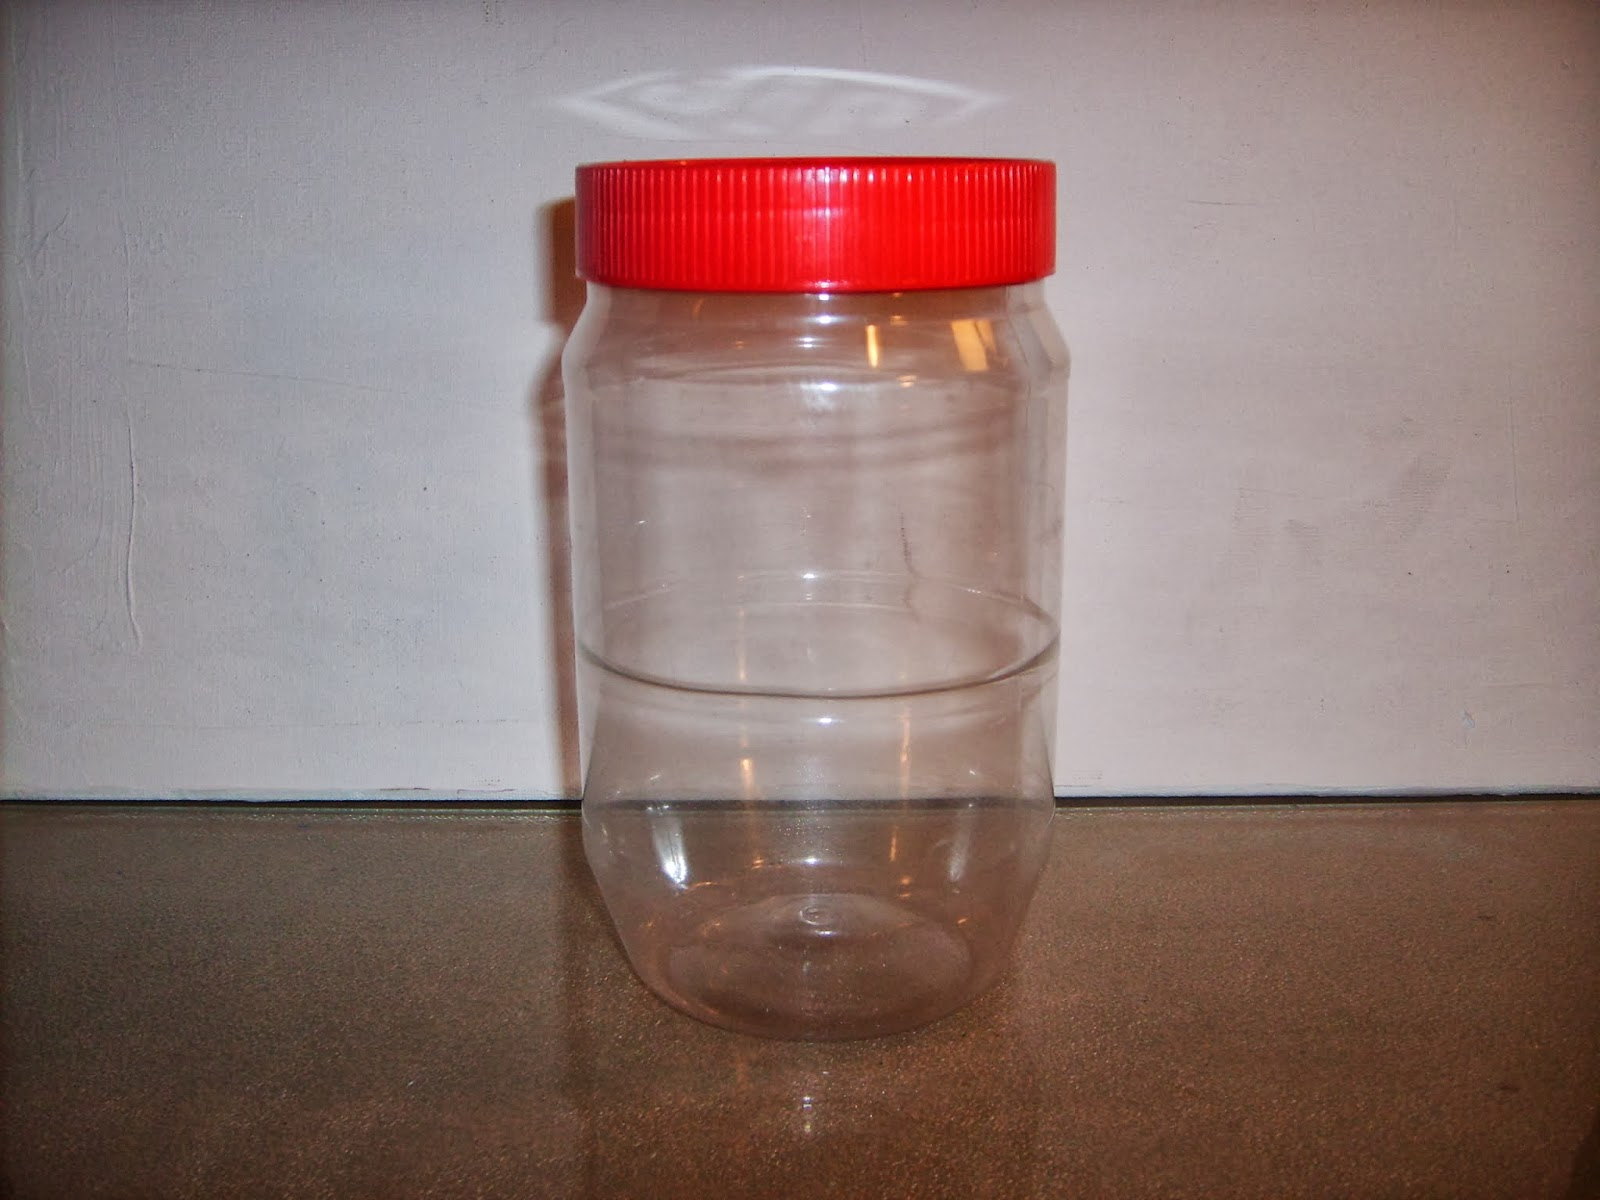 heartedly handcrafted repurpose a plastic jar for